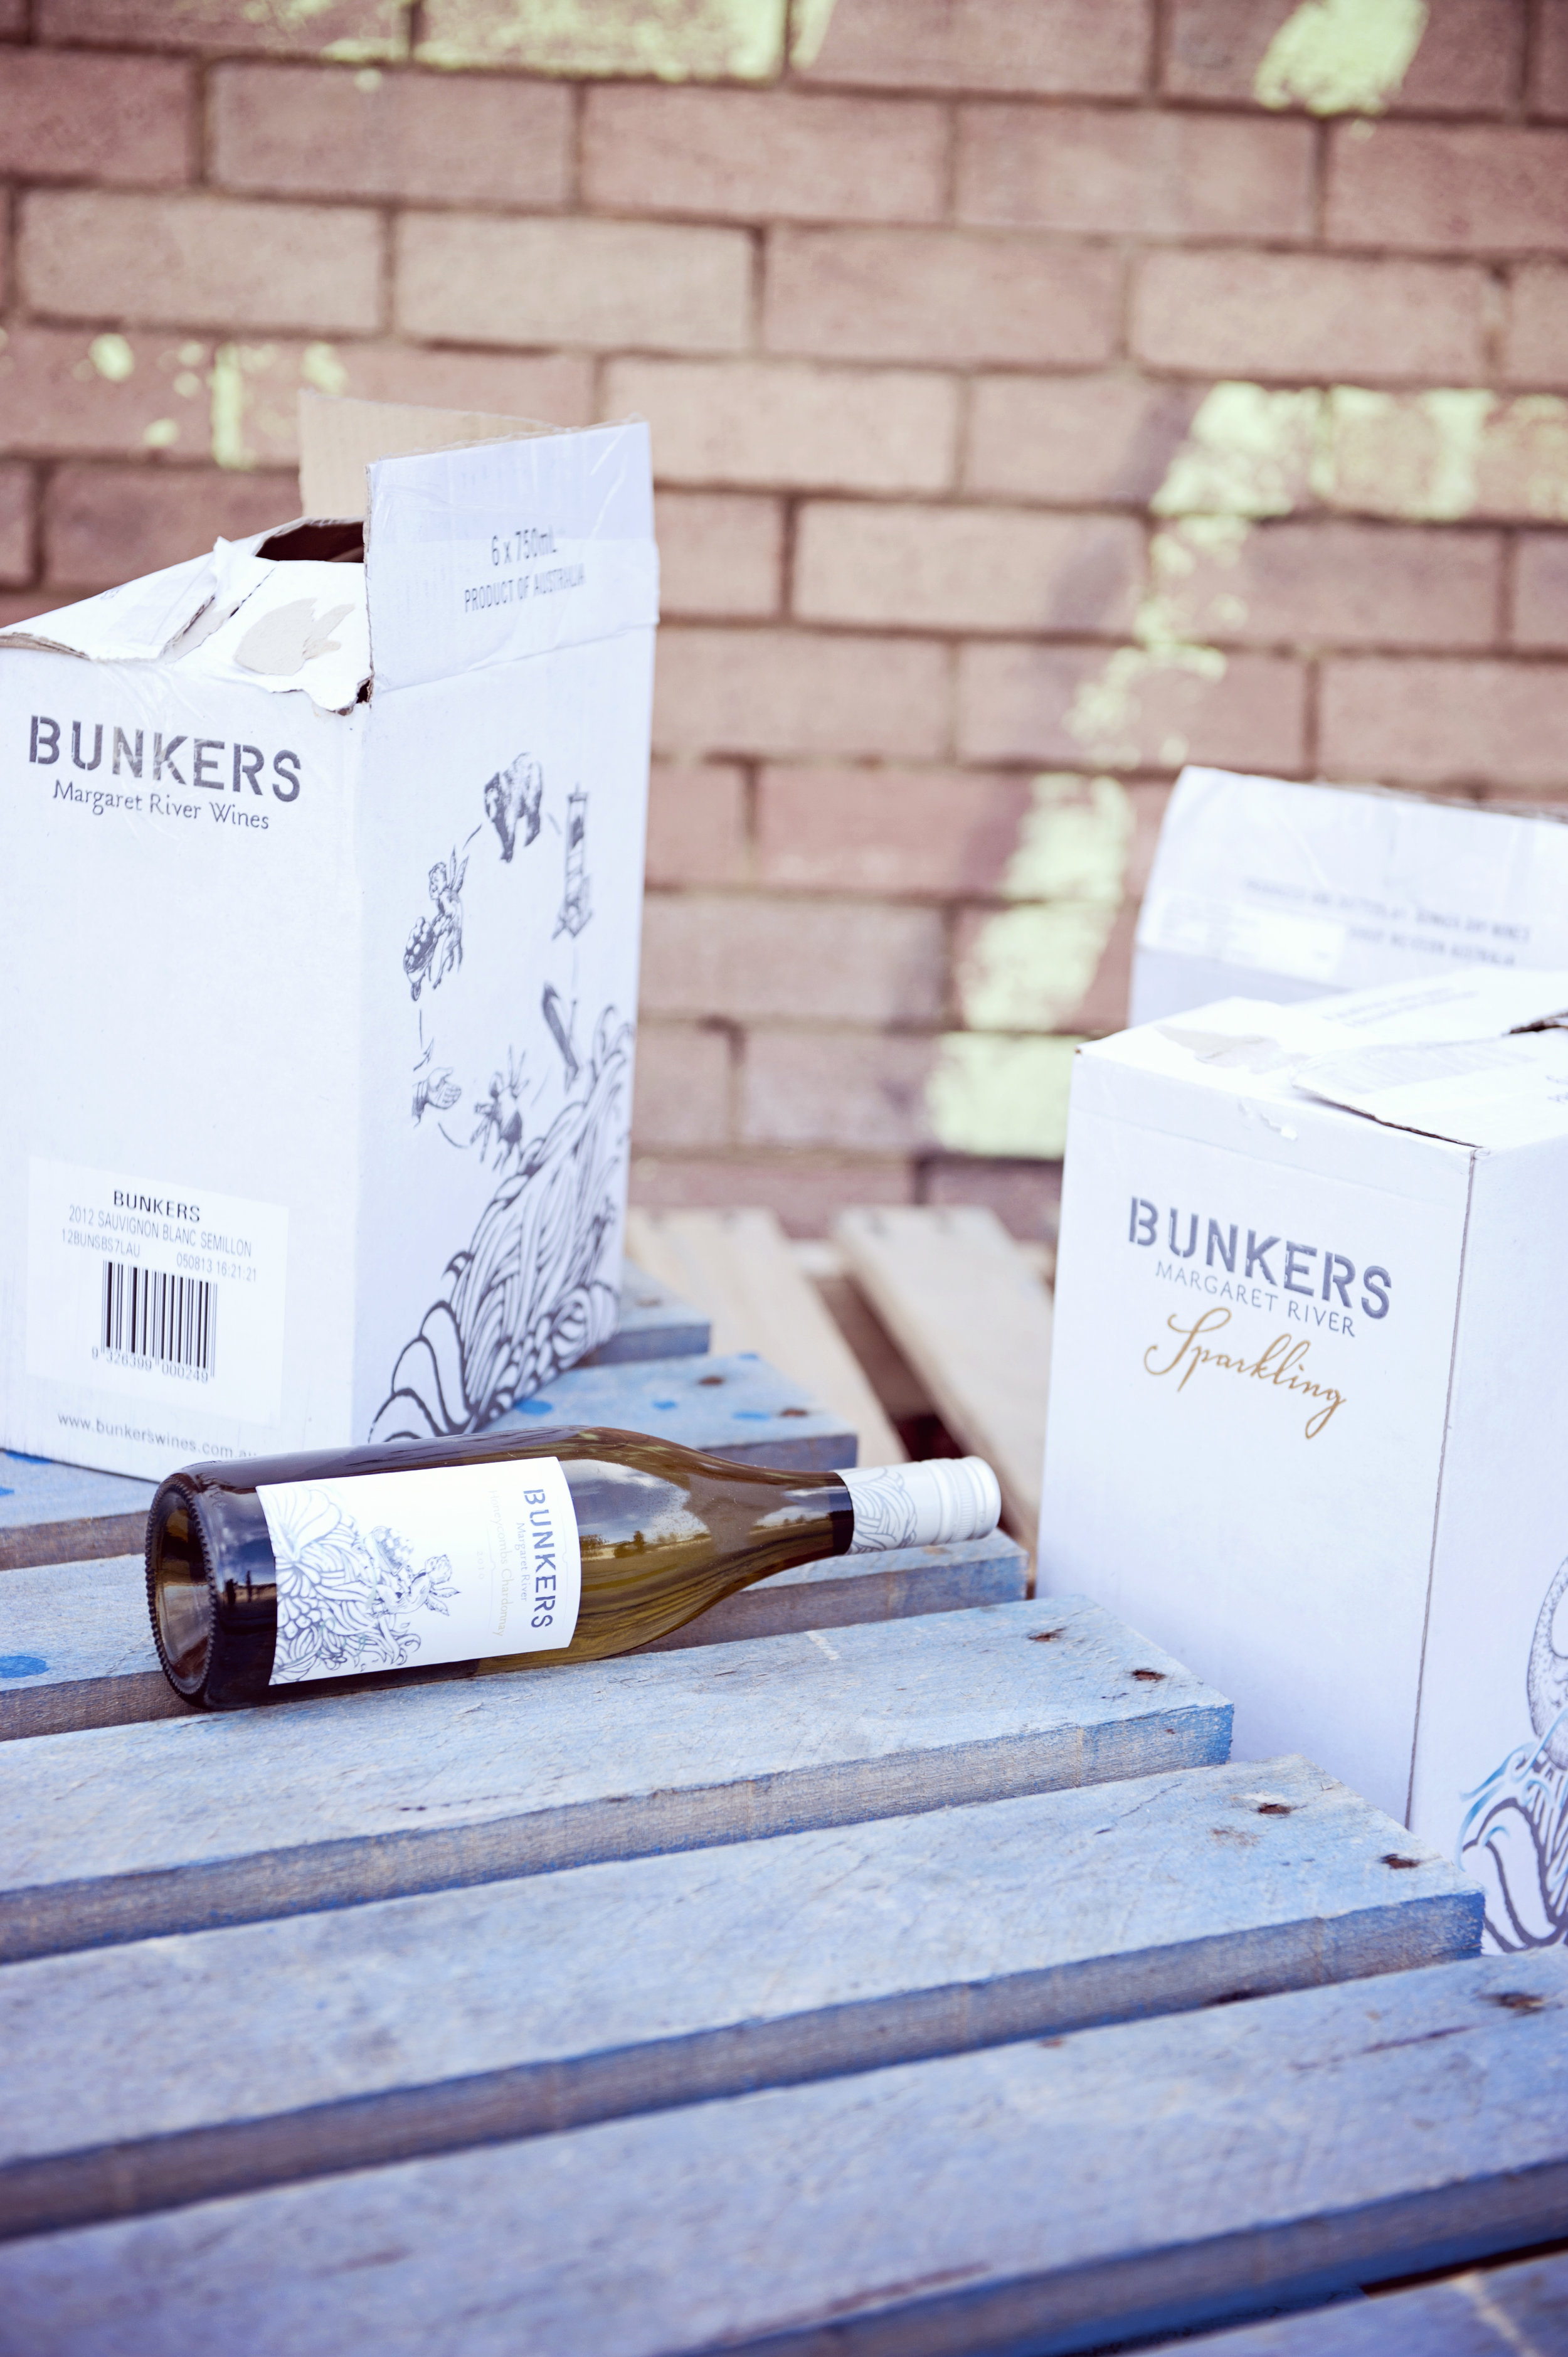 037 - Bunkers boxes with Chard bottle laying down.jpg